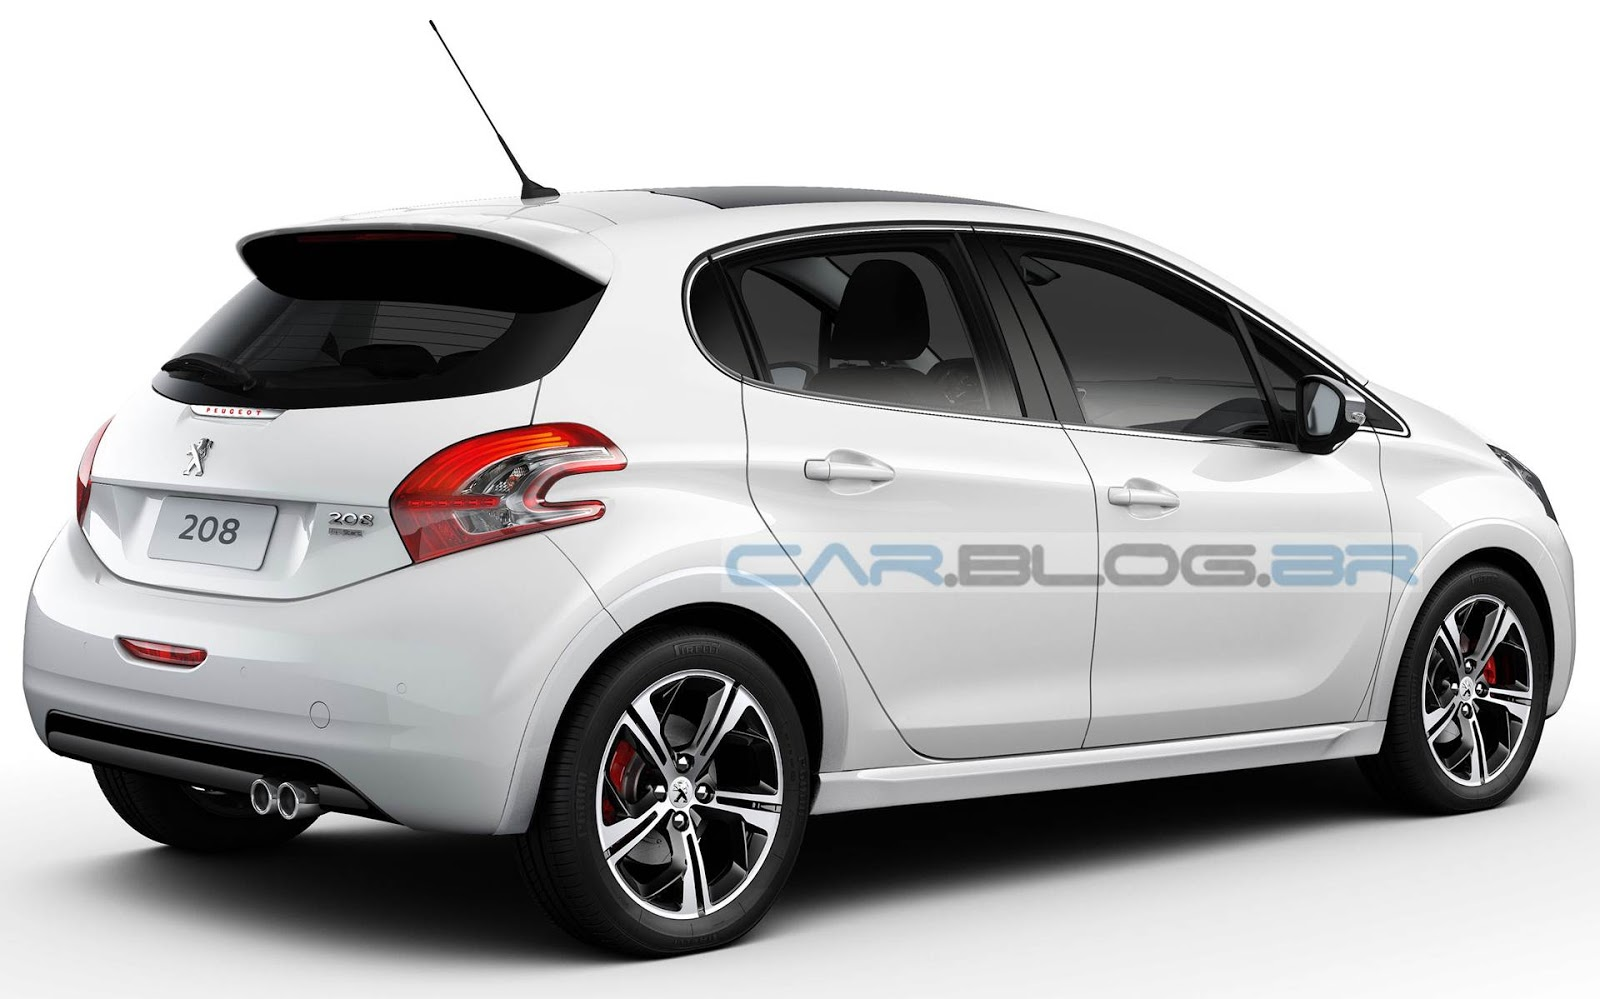 peugeot 208 gti lan amento em 2014 com quatro portas car blog br. Black Bedroom Furniture Sets. Home Design Ideas